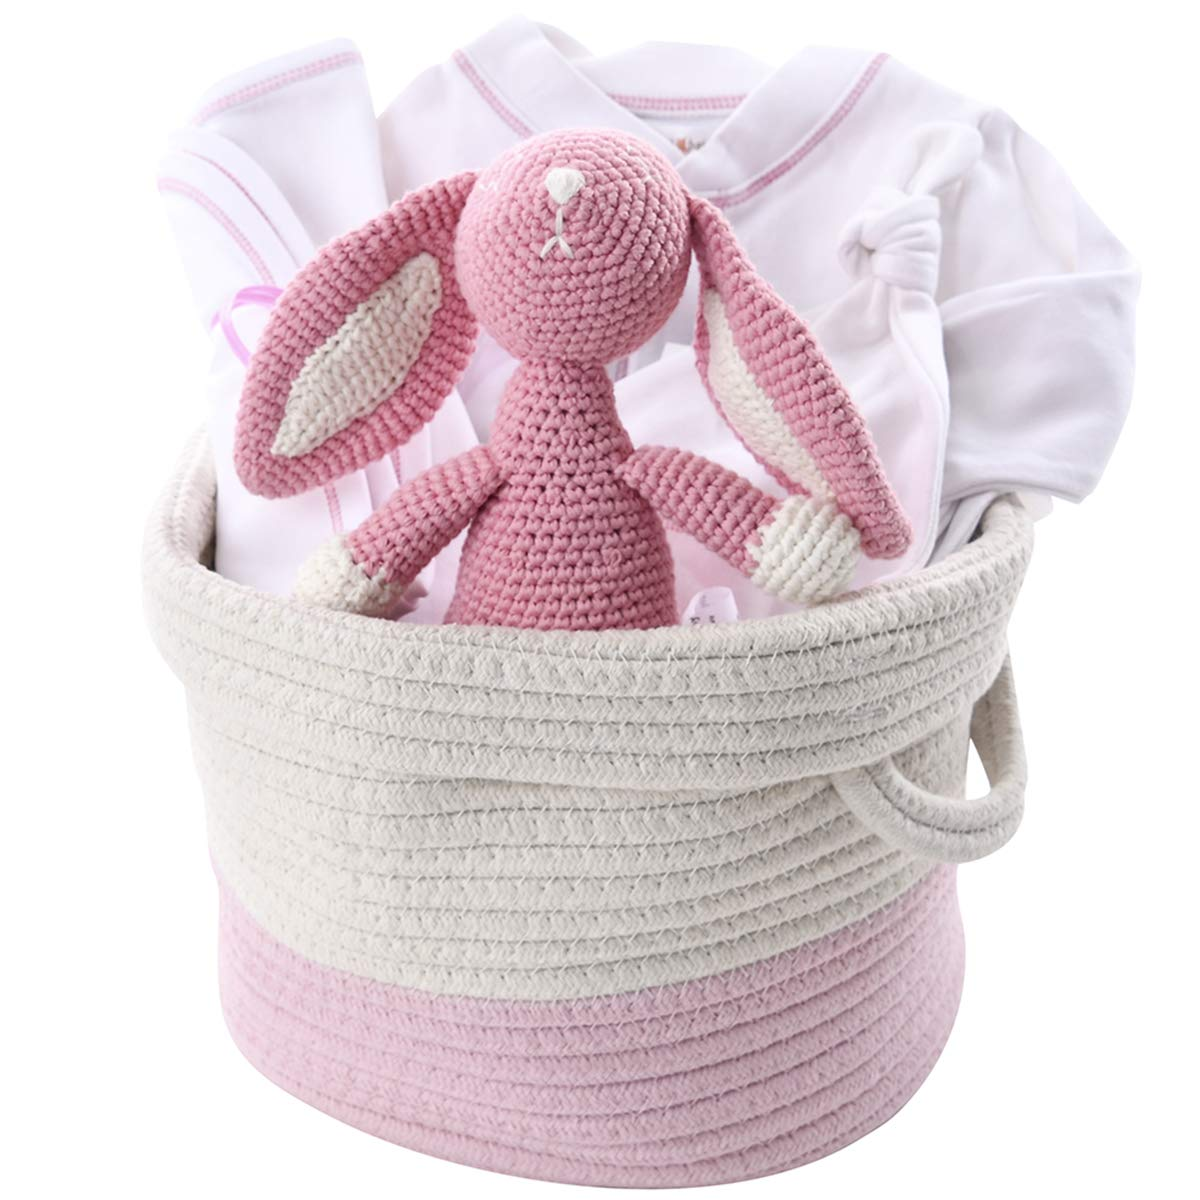 Organic Baby Girl Gift Basket - Pink Bunny Layette in Cotton Tote